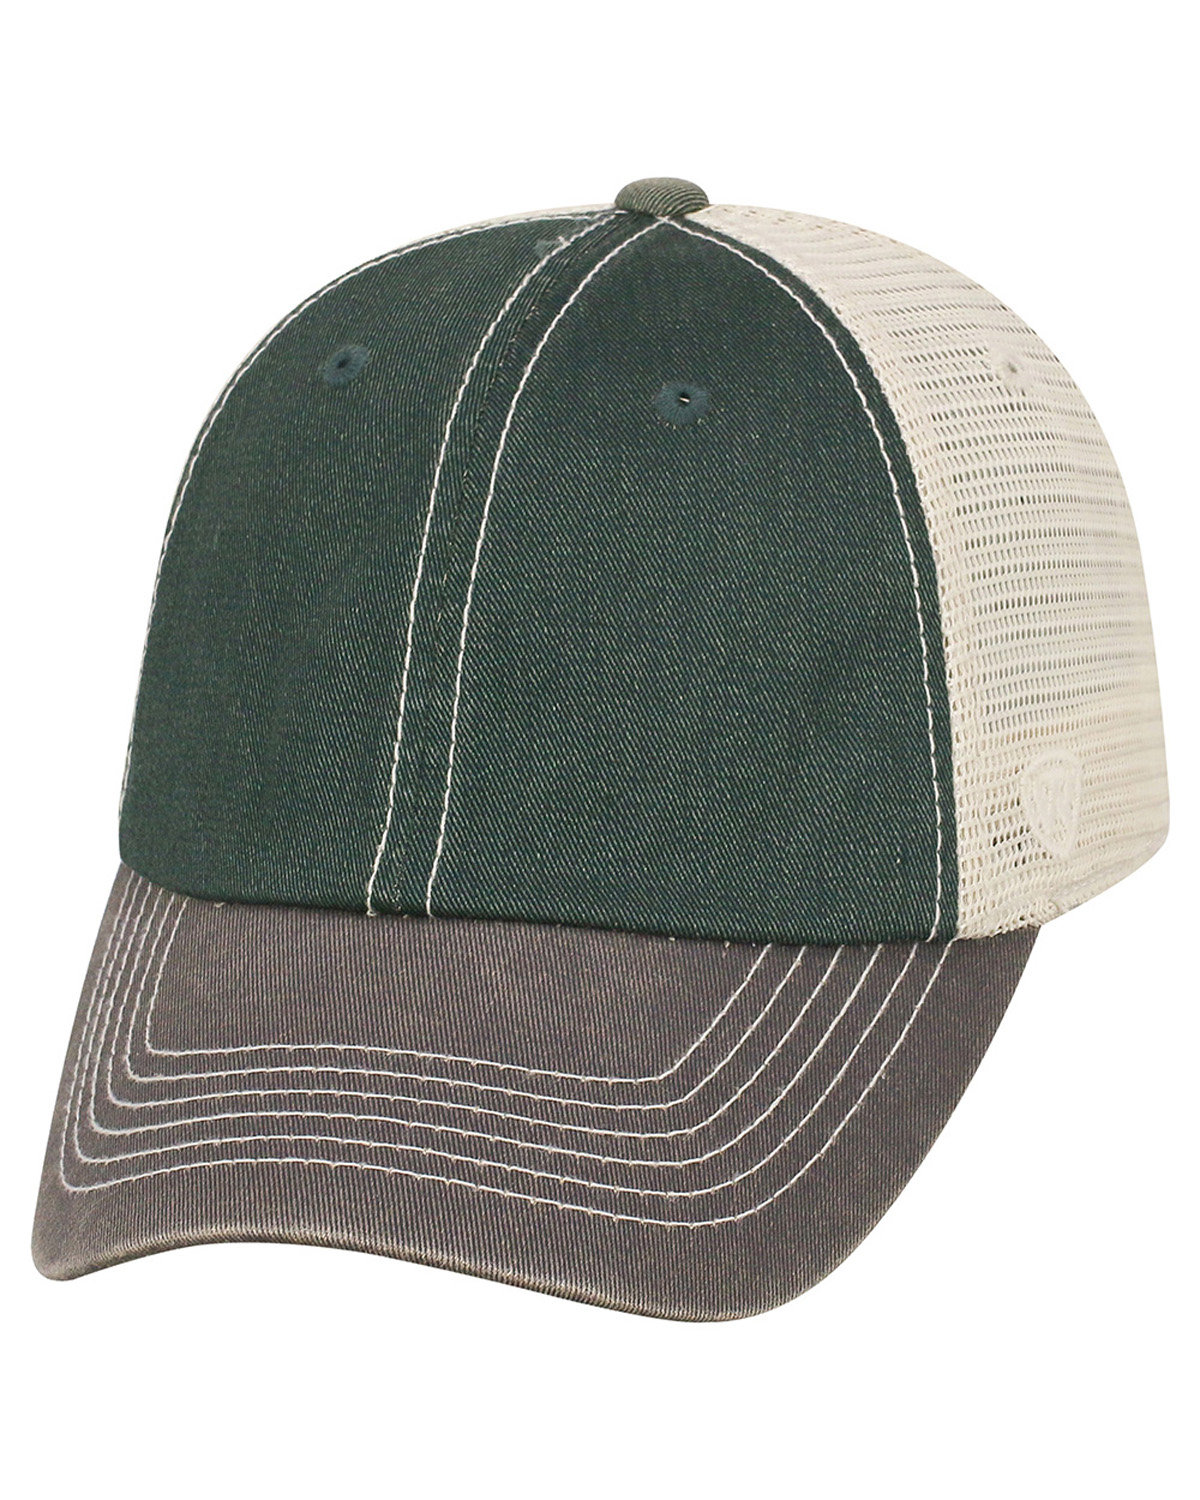 Top Of The World Adult Offroad Cap FOREST